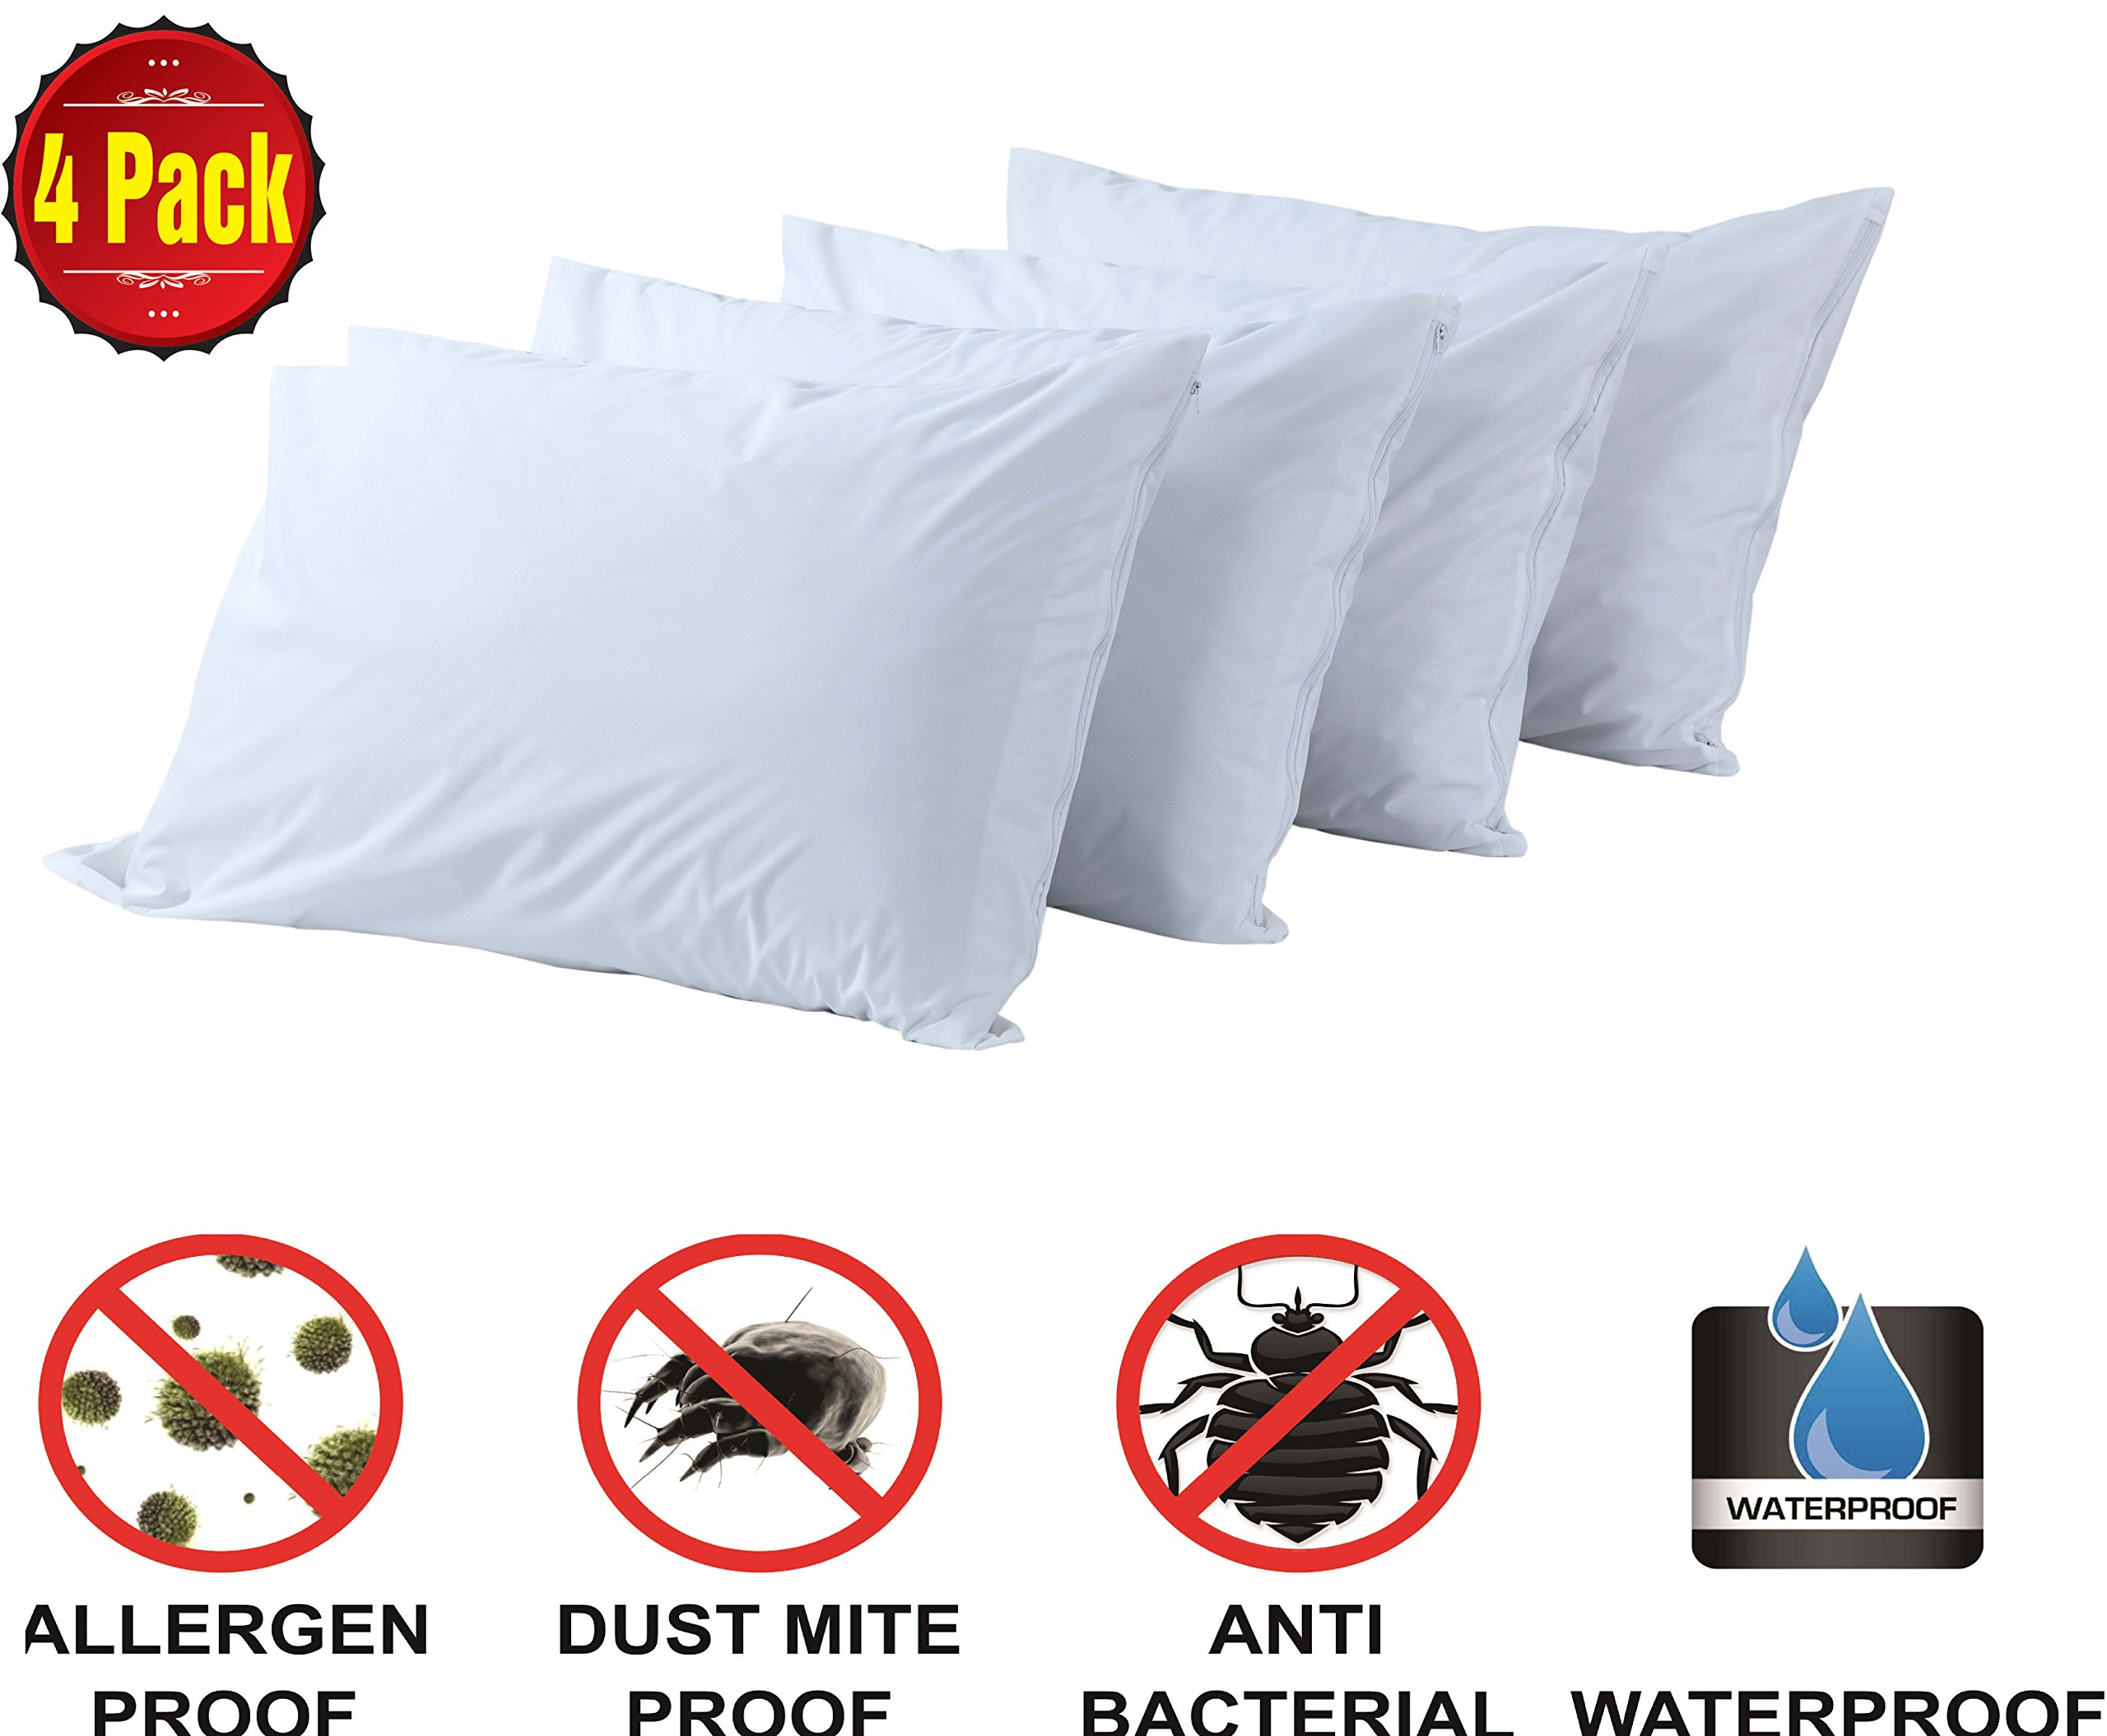 Pillow Protectors Standard 4 Pack 100% Waterproof Anti Allergy Bed Bug Dust Mite Proof Life Time Replacement Smooth Polyester Jersey Fabric Zipp Encasement Hypoallergenic Covers Cases Set White